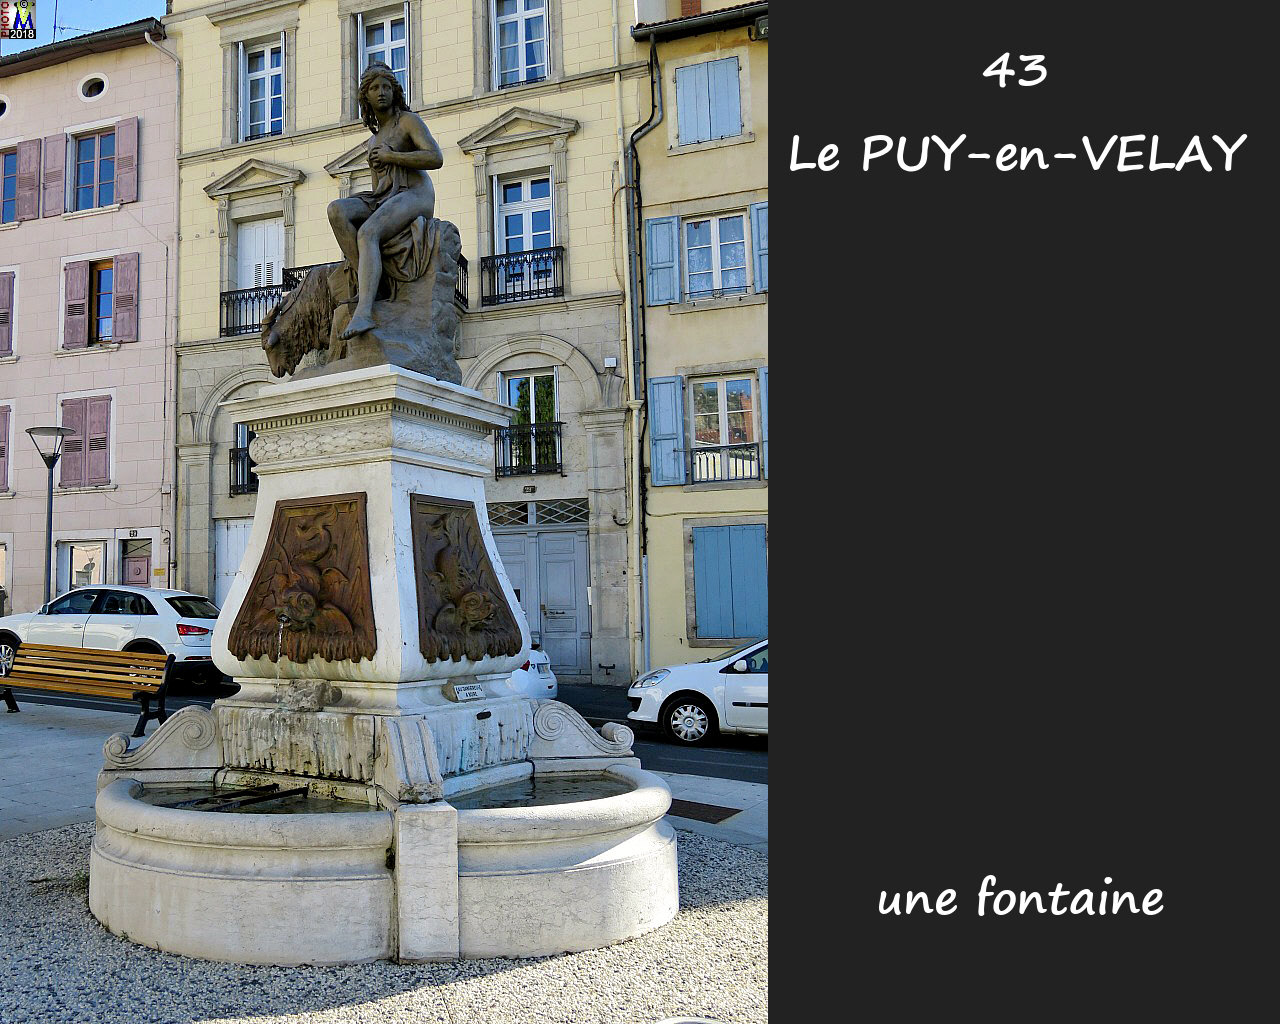 43PUY-EN-VELAY_fontaine_160.jpg